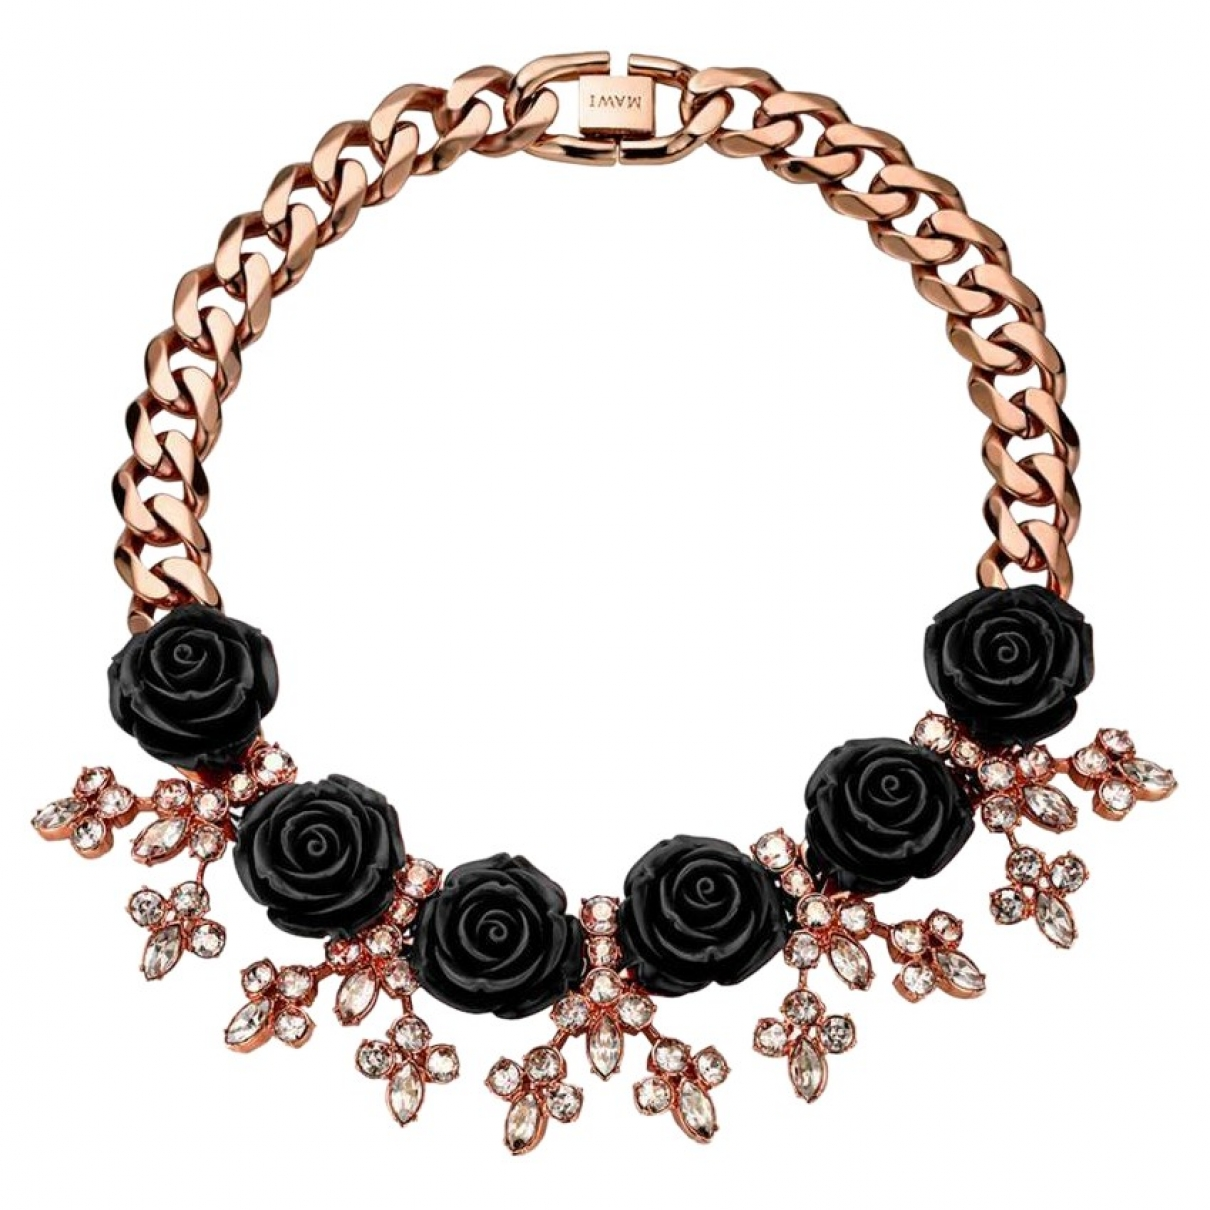 Mawi \N Kette in  Gold Metall